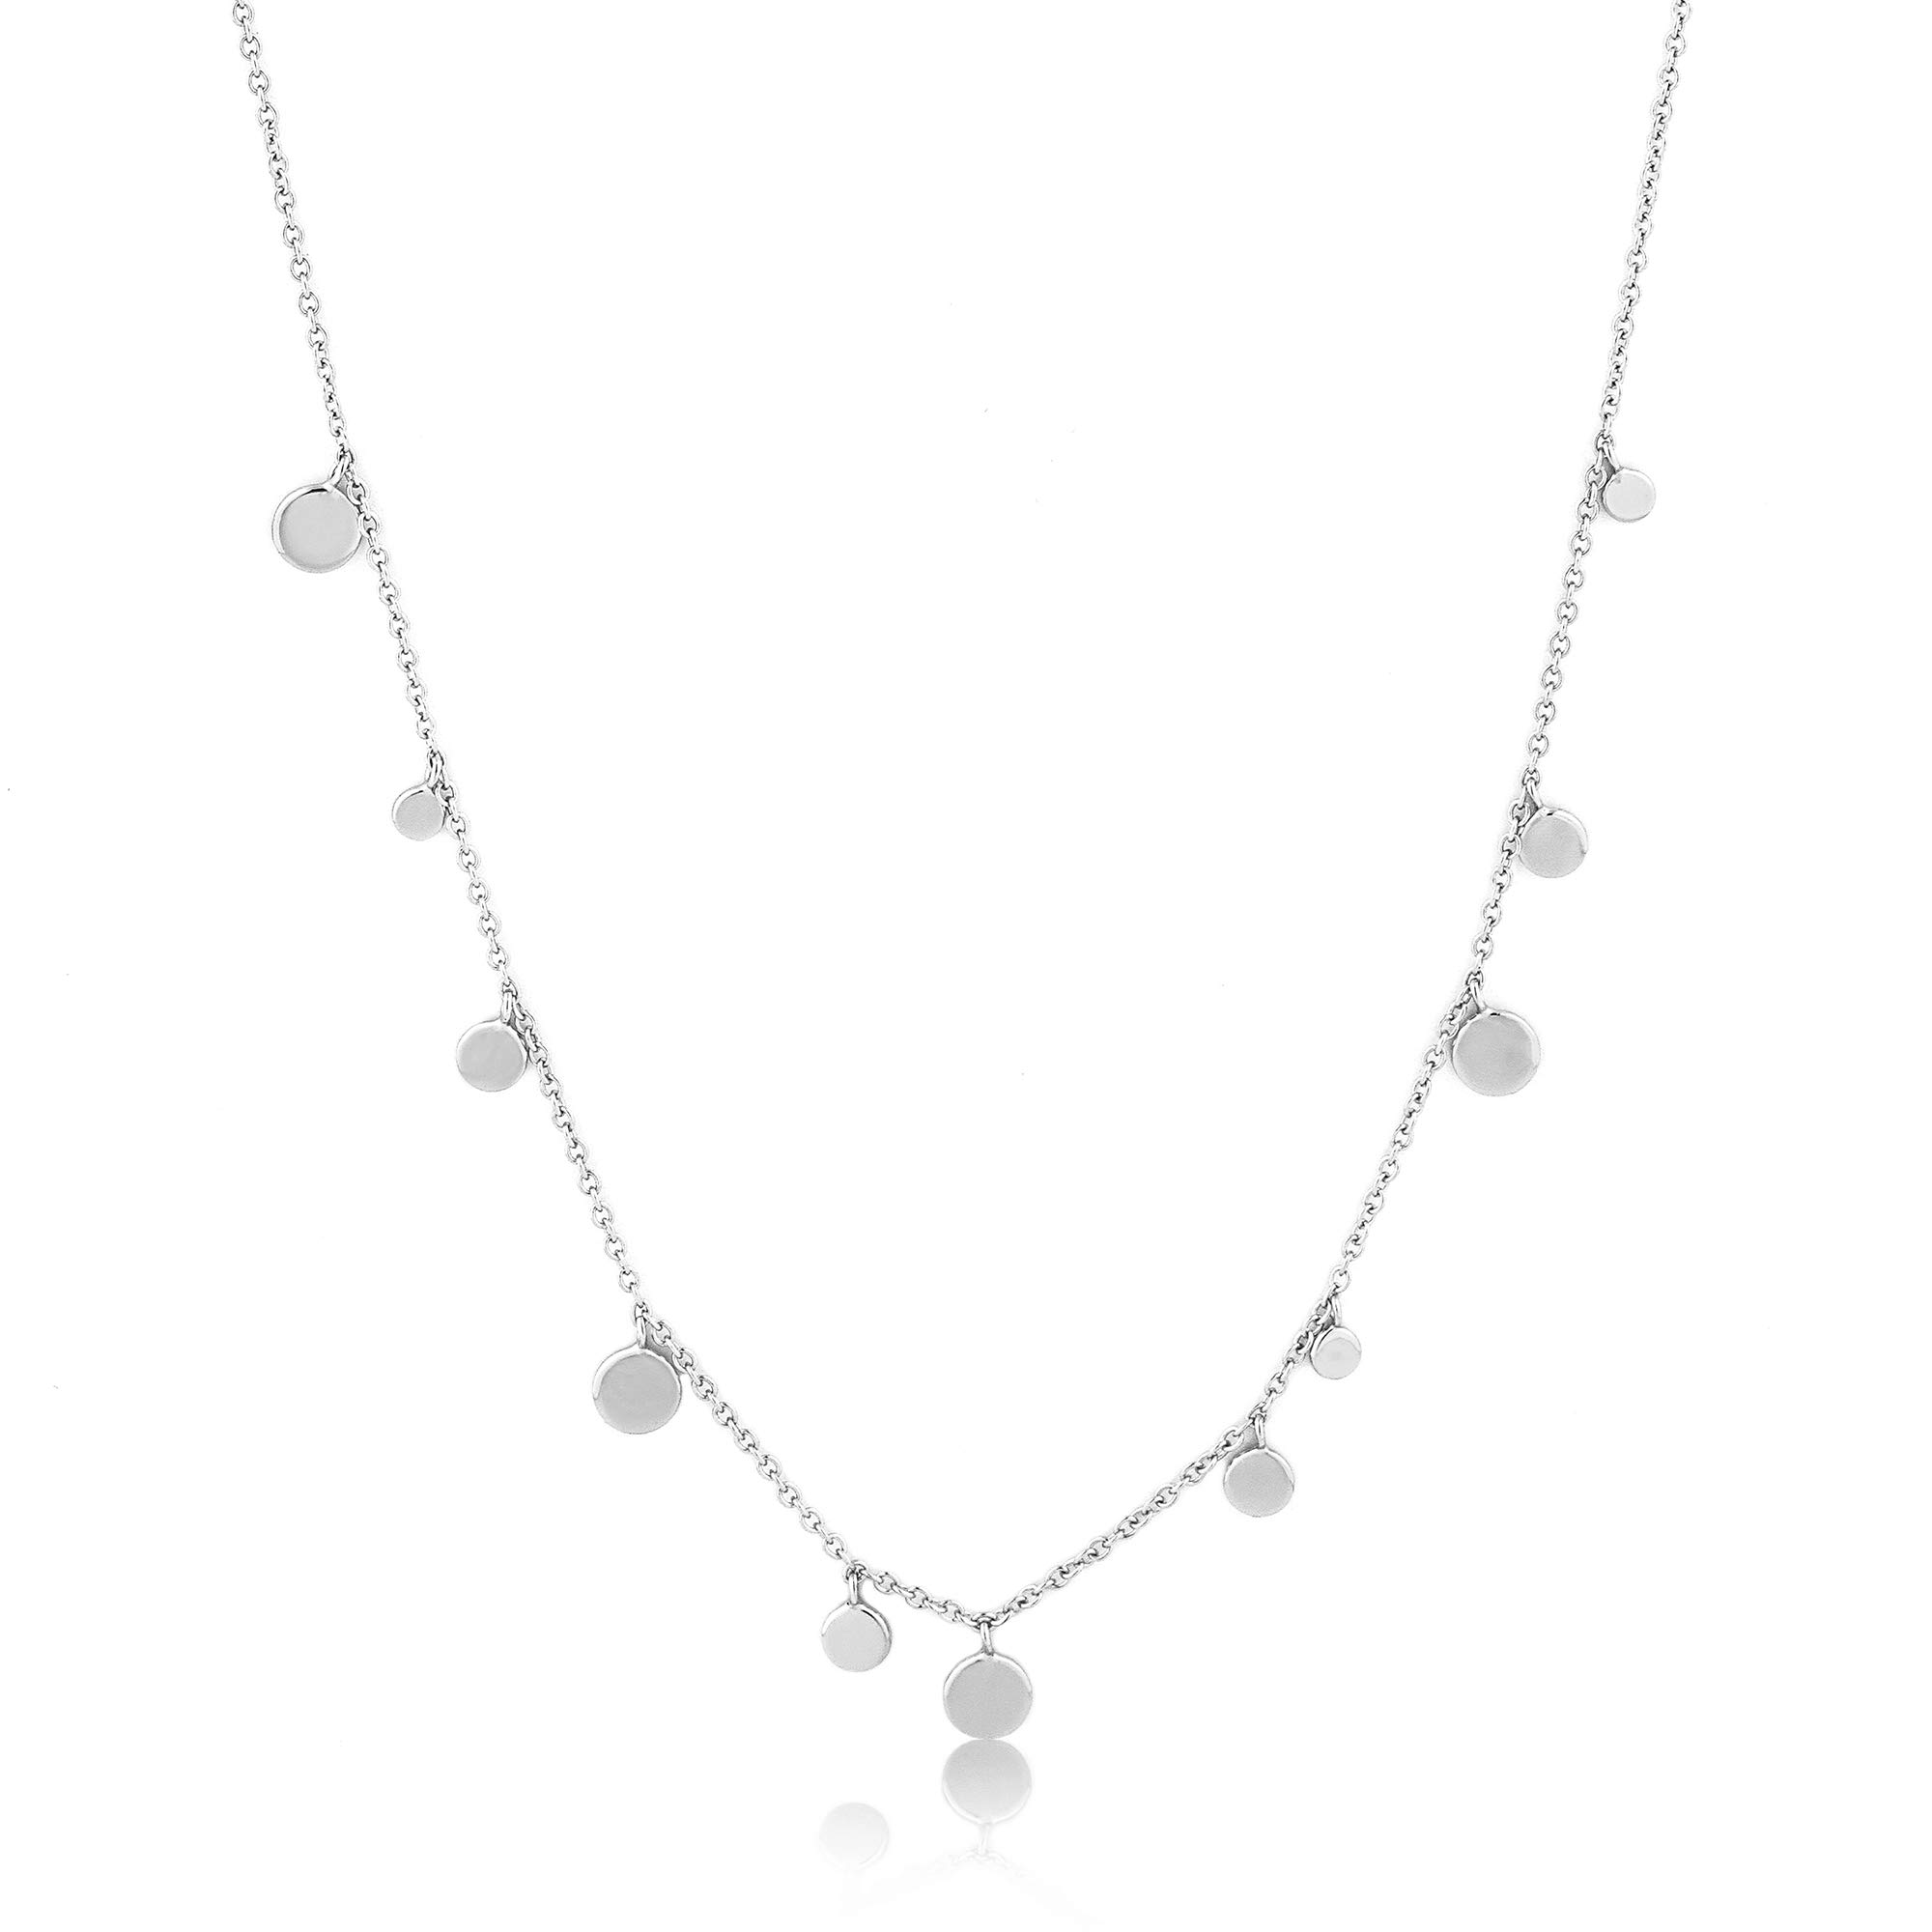 Fun Boho 925 Sterling Silver Layered Dainty Delicate Ball Circle Disk Necklace, White Rhodium